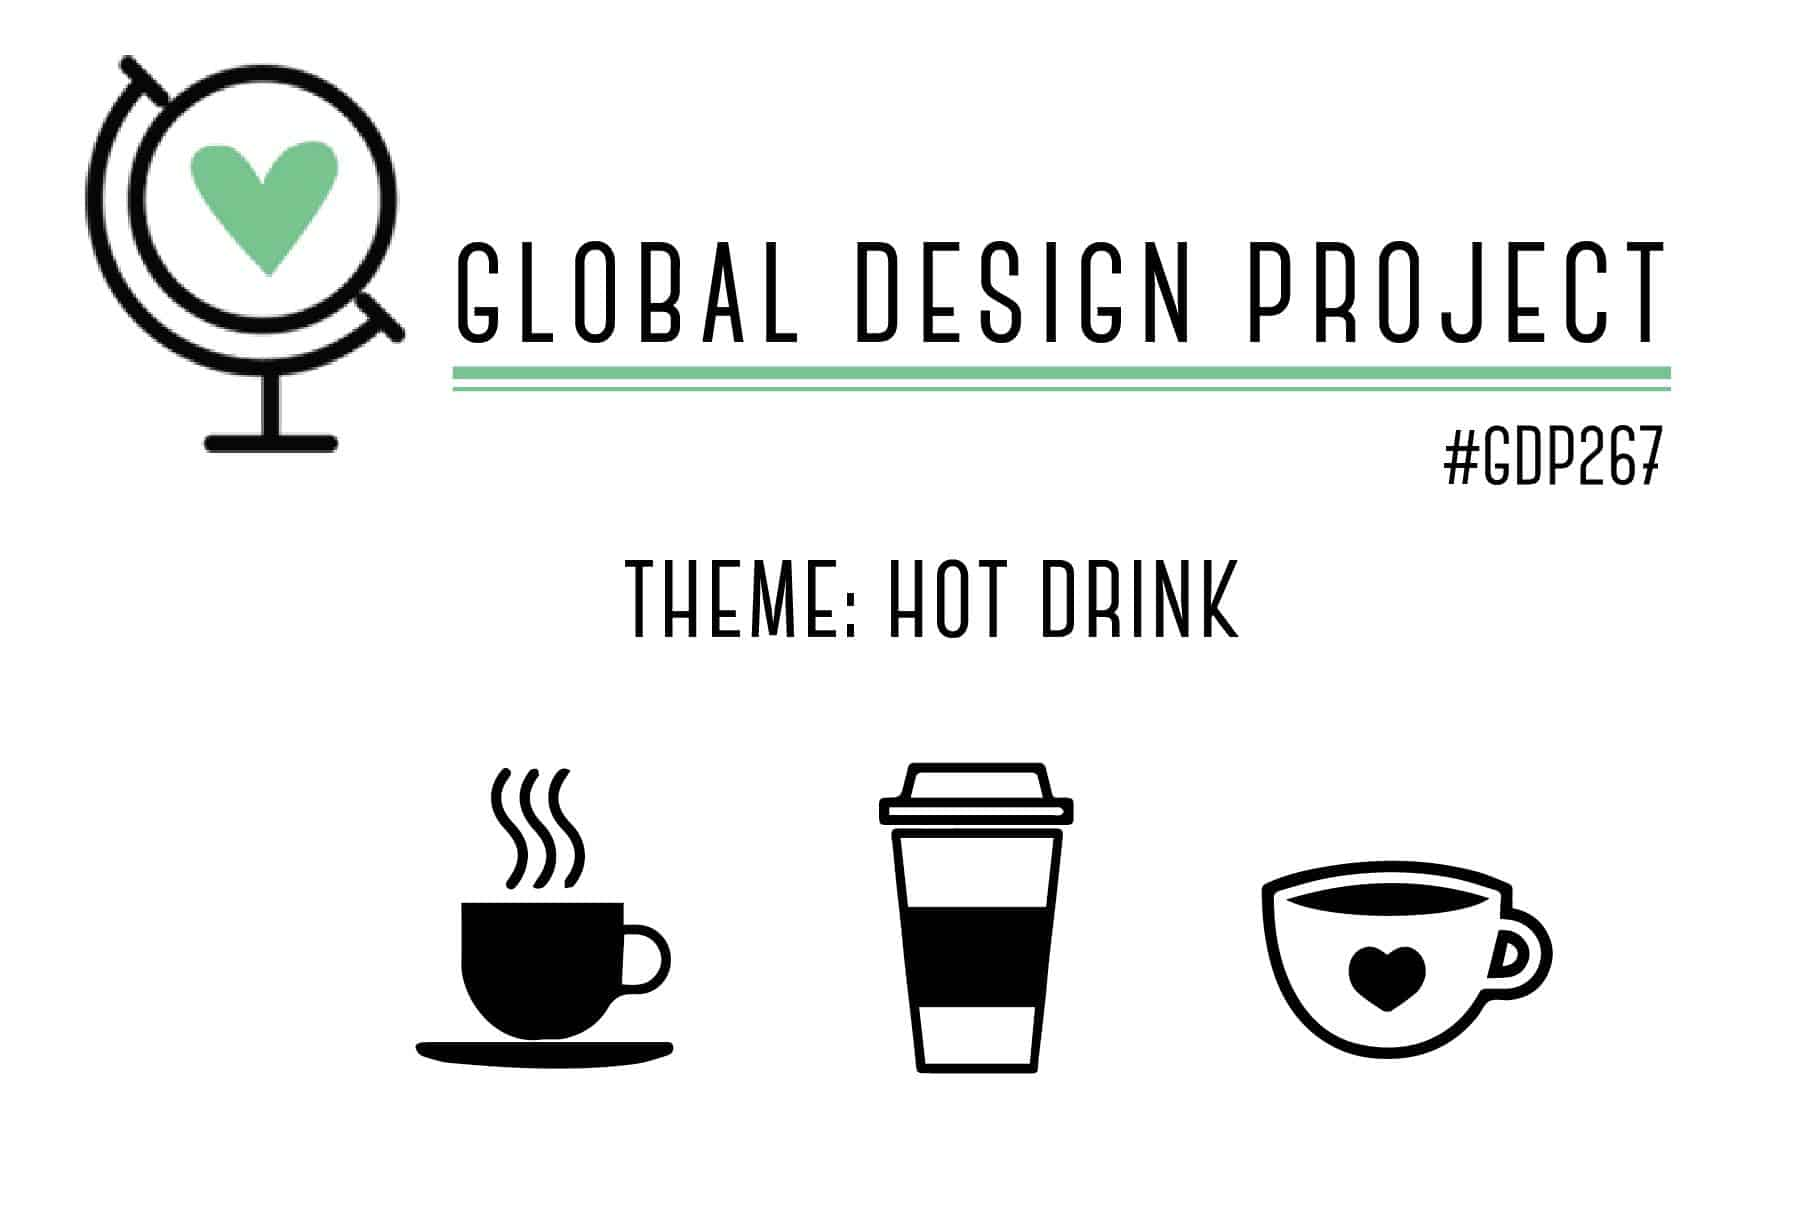 Global Design Project 267